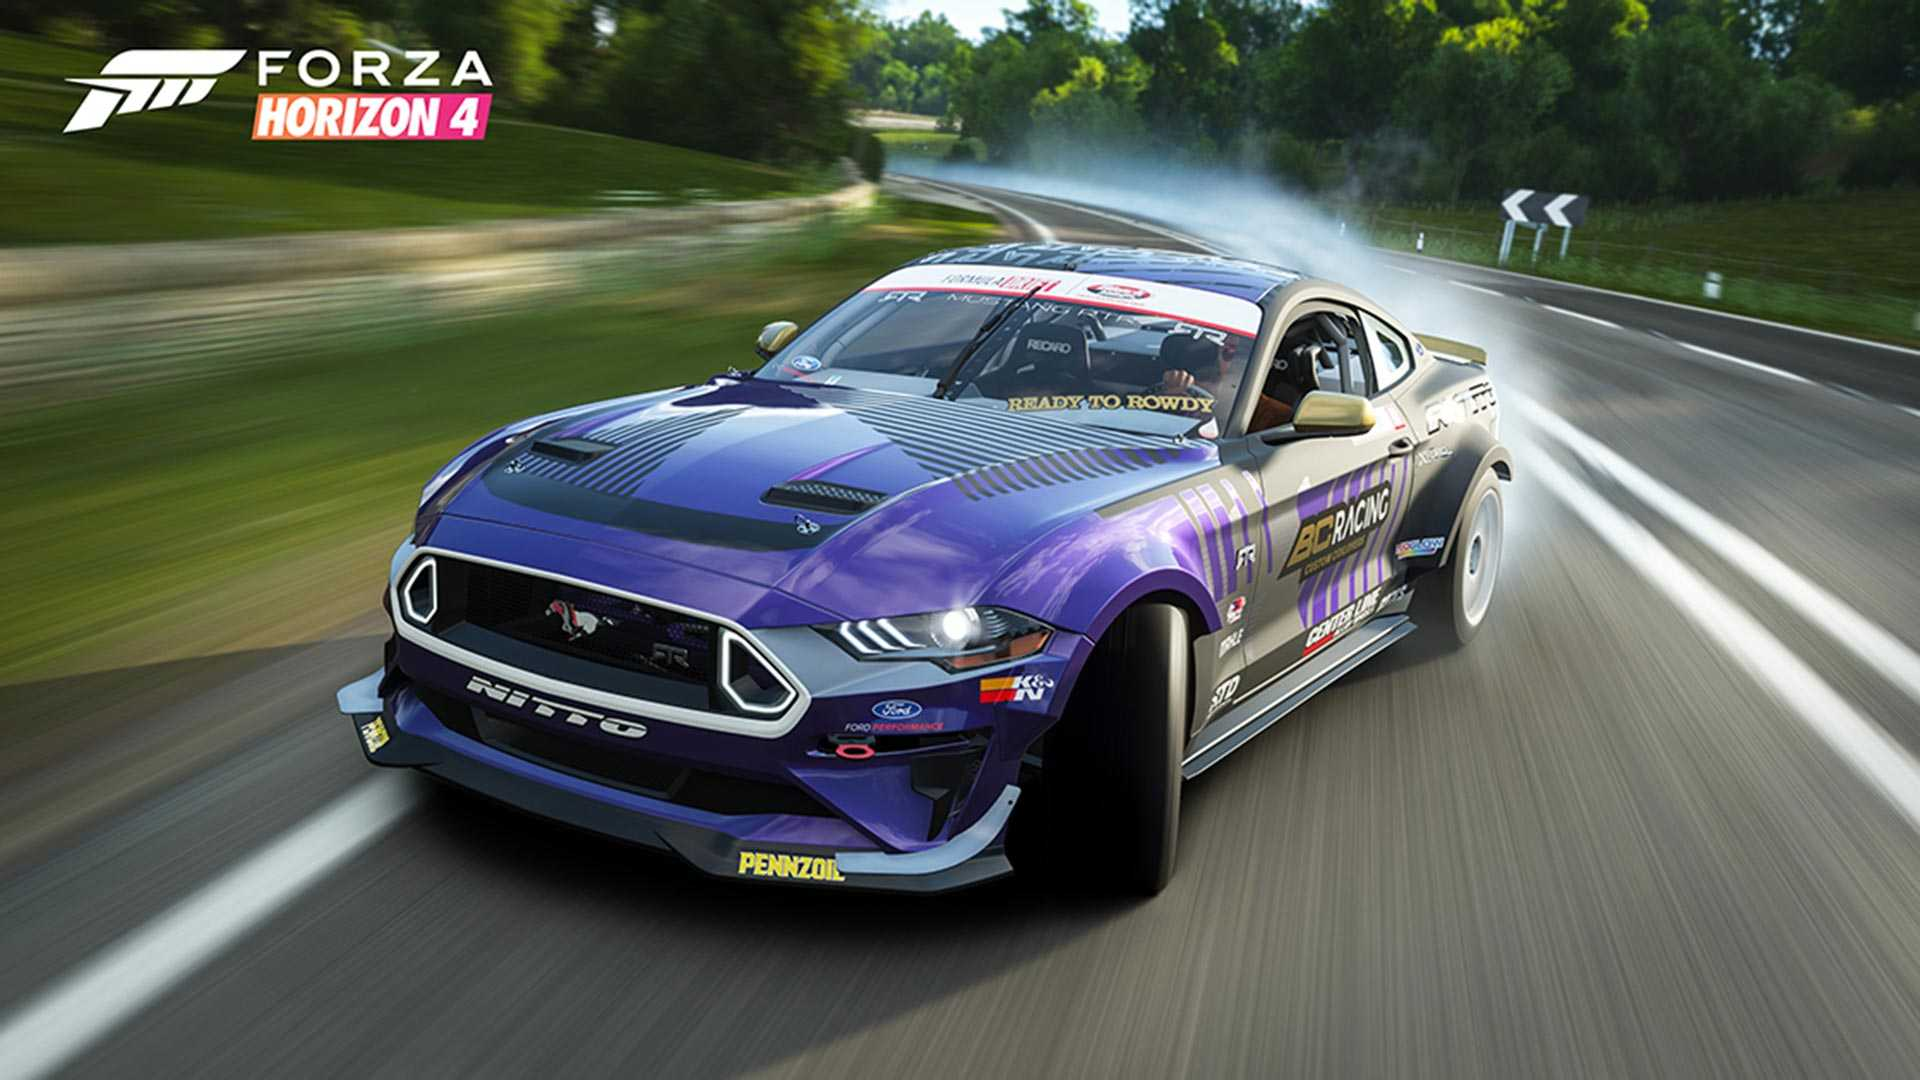 Forza Motorsport 7, Forza Horizon 4 Updates Add RTR Drift cars